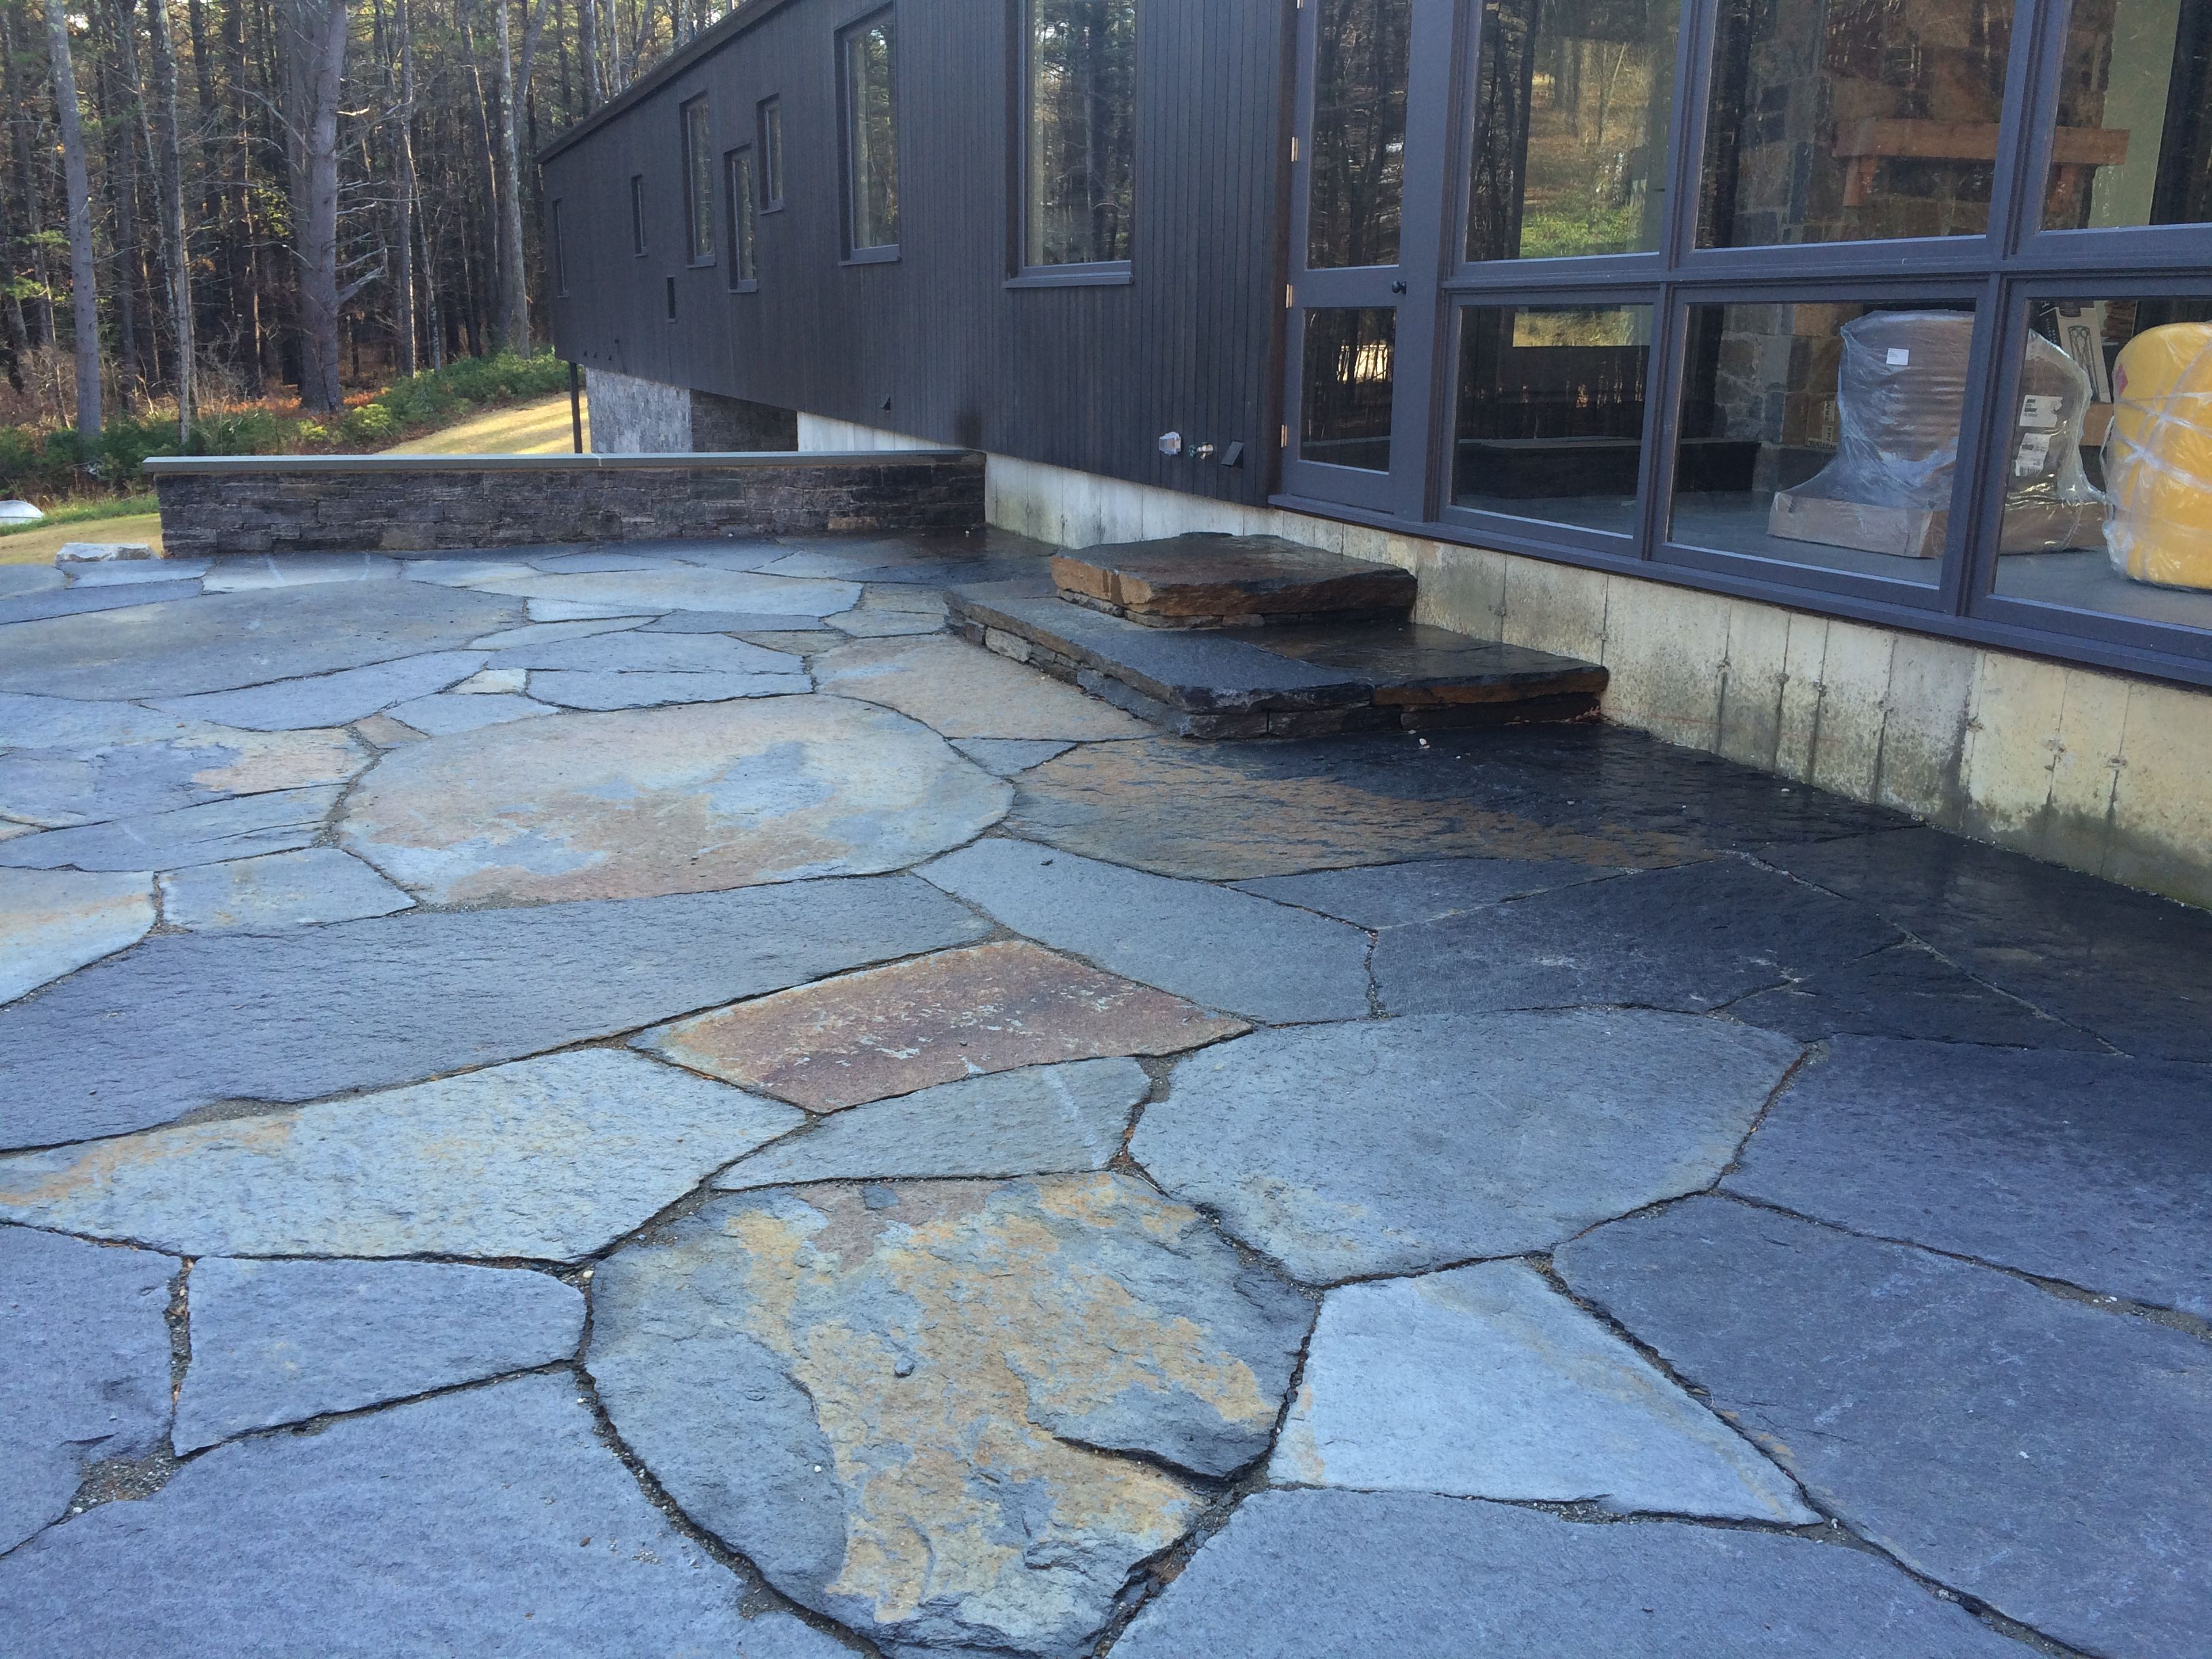 Goshen stone patio and stairs concrete retaining stem wall with